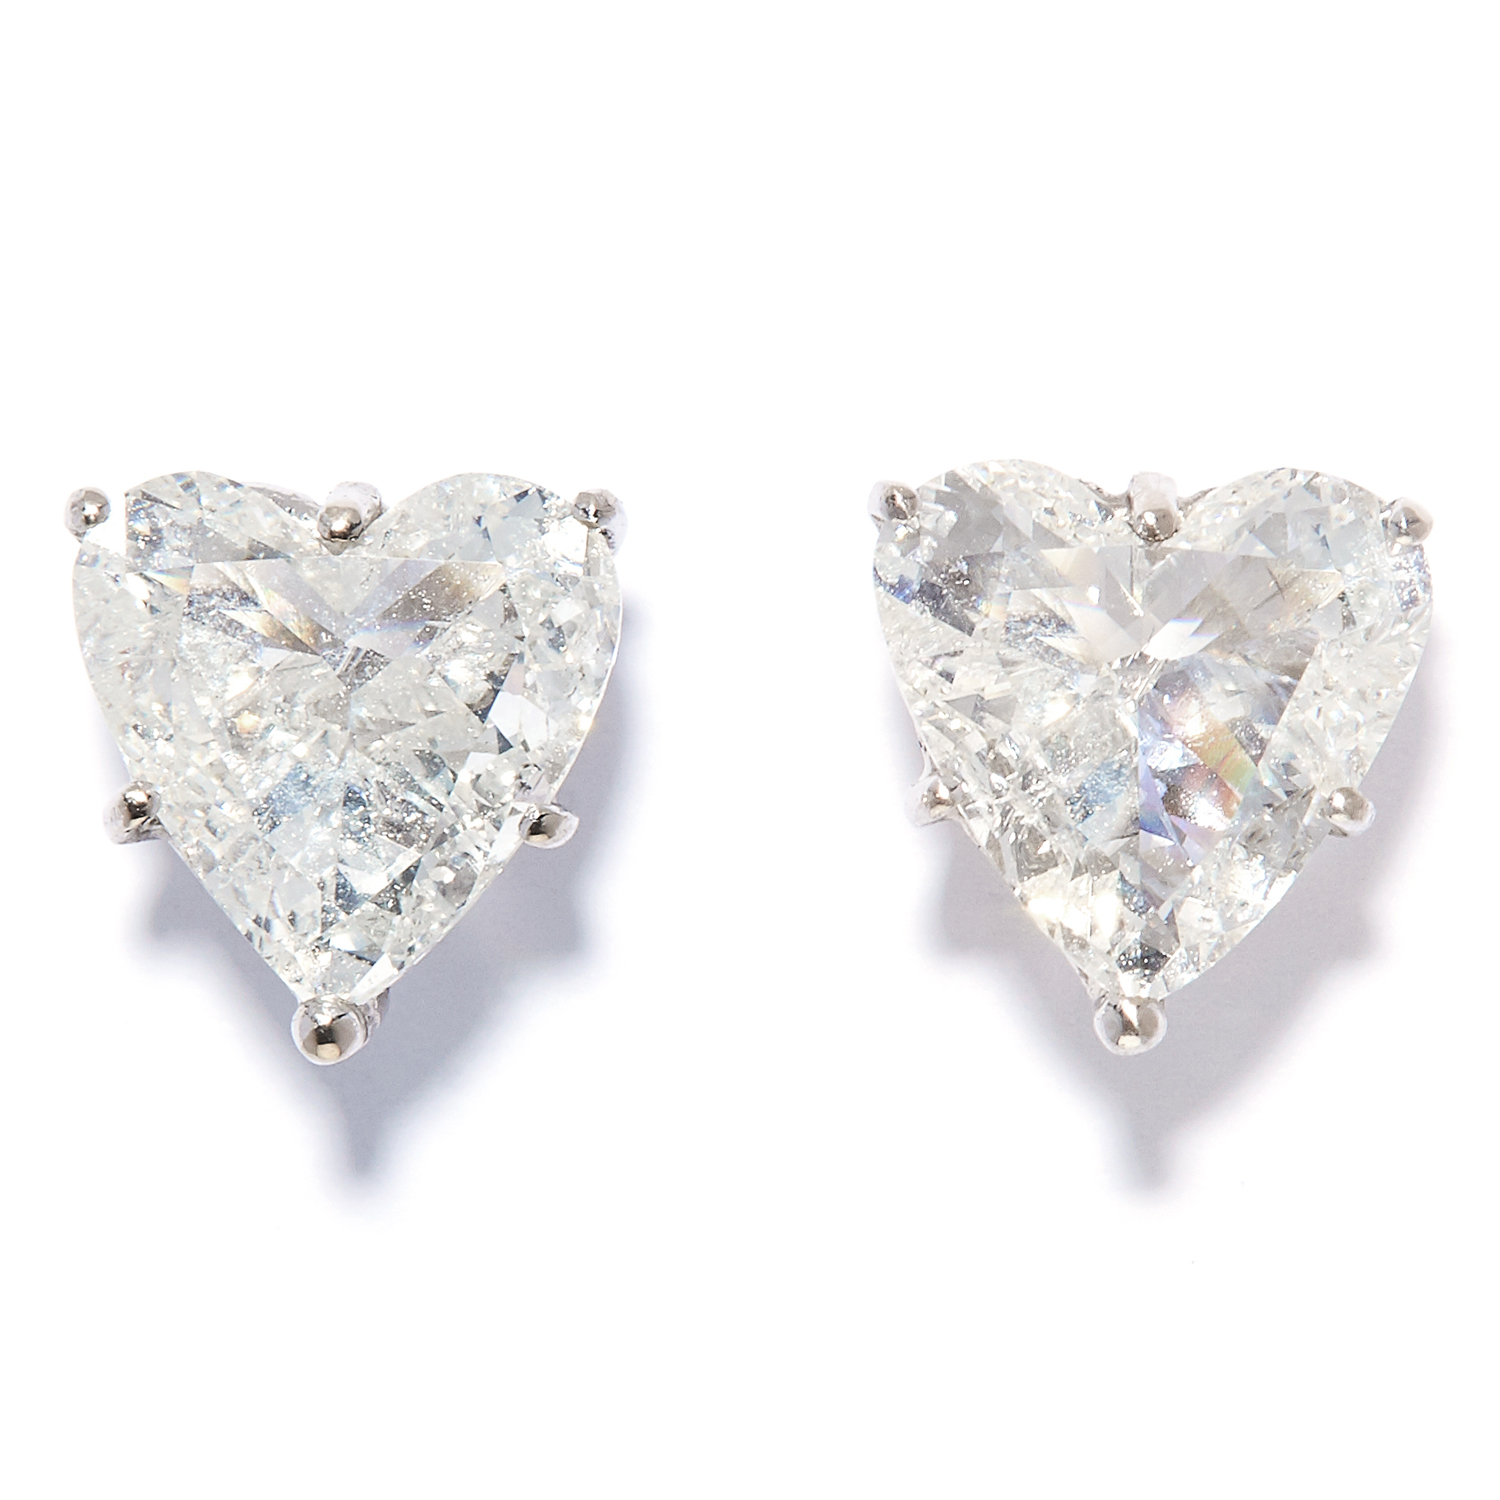 PAIR OF 3.15 CARAT HEART DIAMOND STUD EARRINGS in 18ct white gold, each set with a heart cut diamond